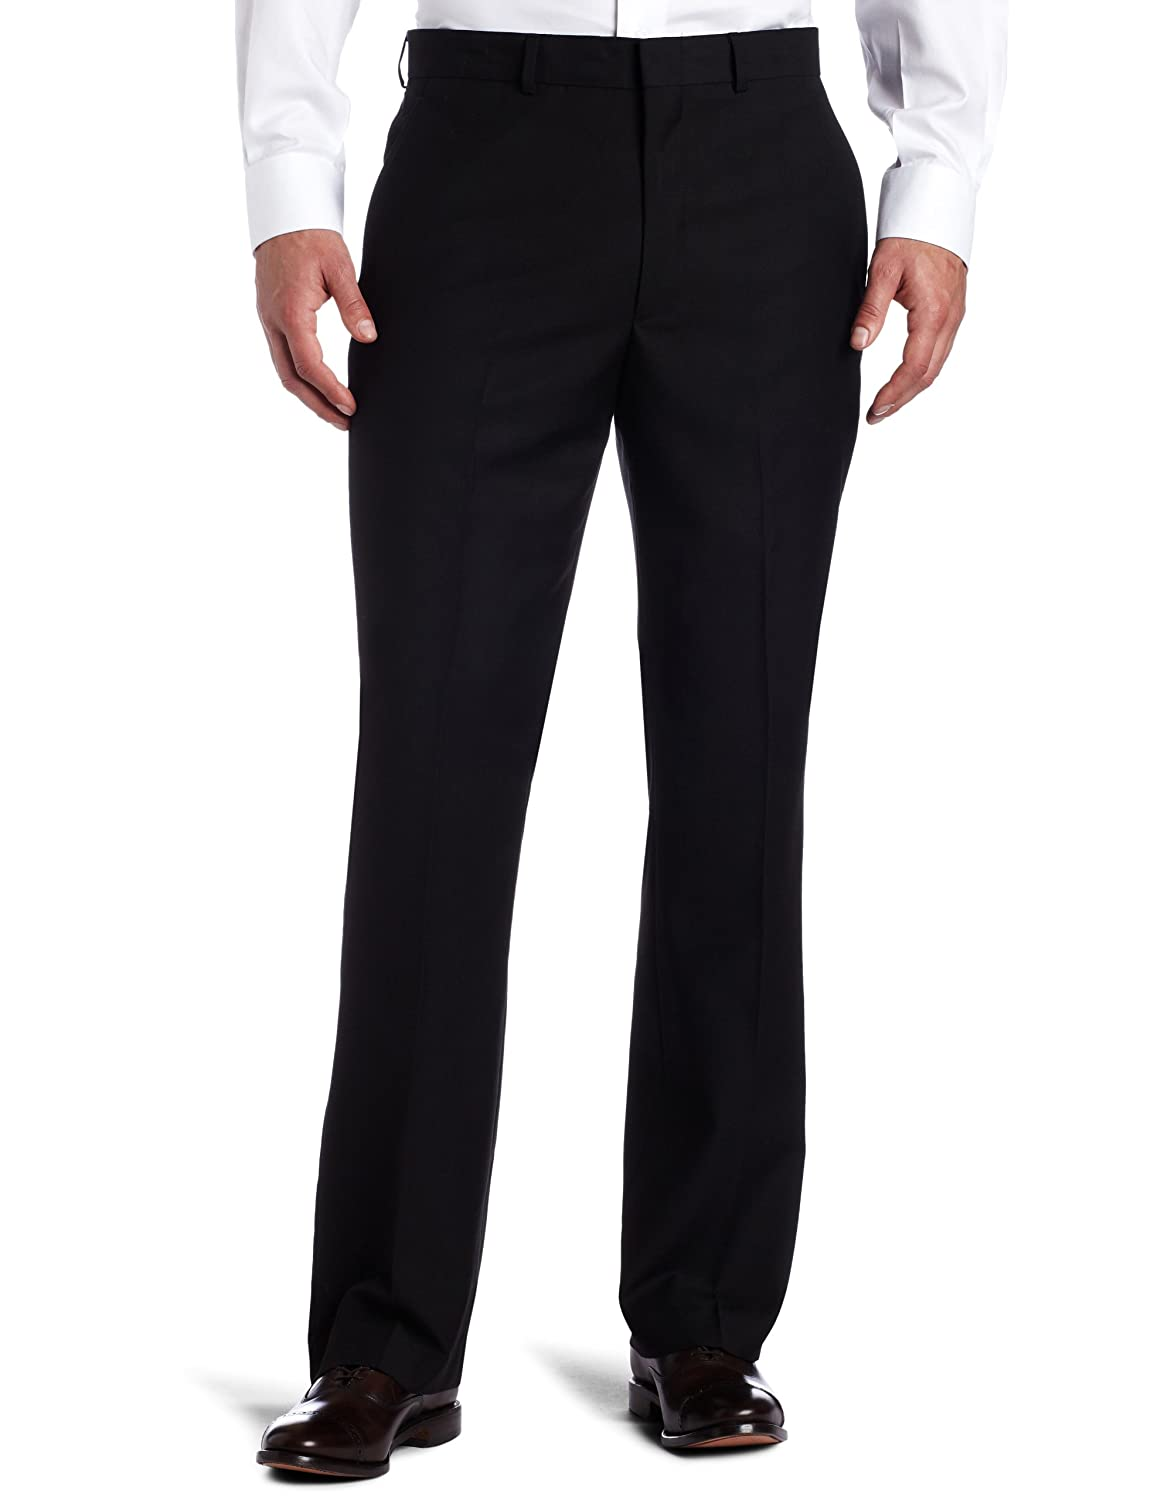 Kenneth Cole REACTION mens Slim Fit Suit Separate (Blazerand Pant) 12430011-001